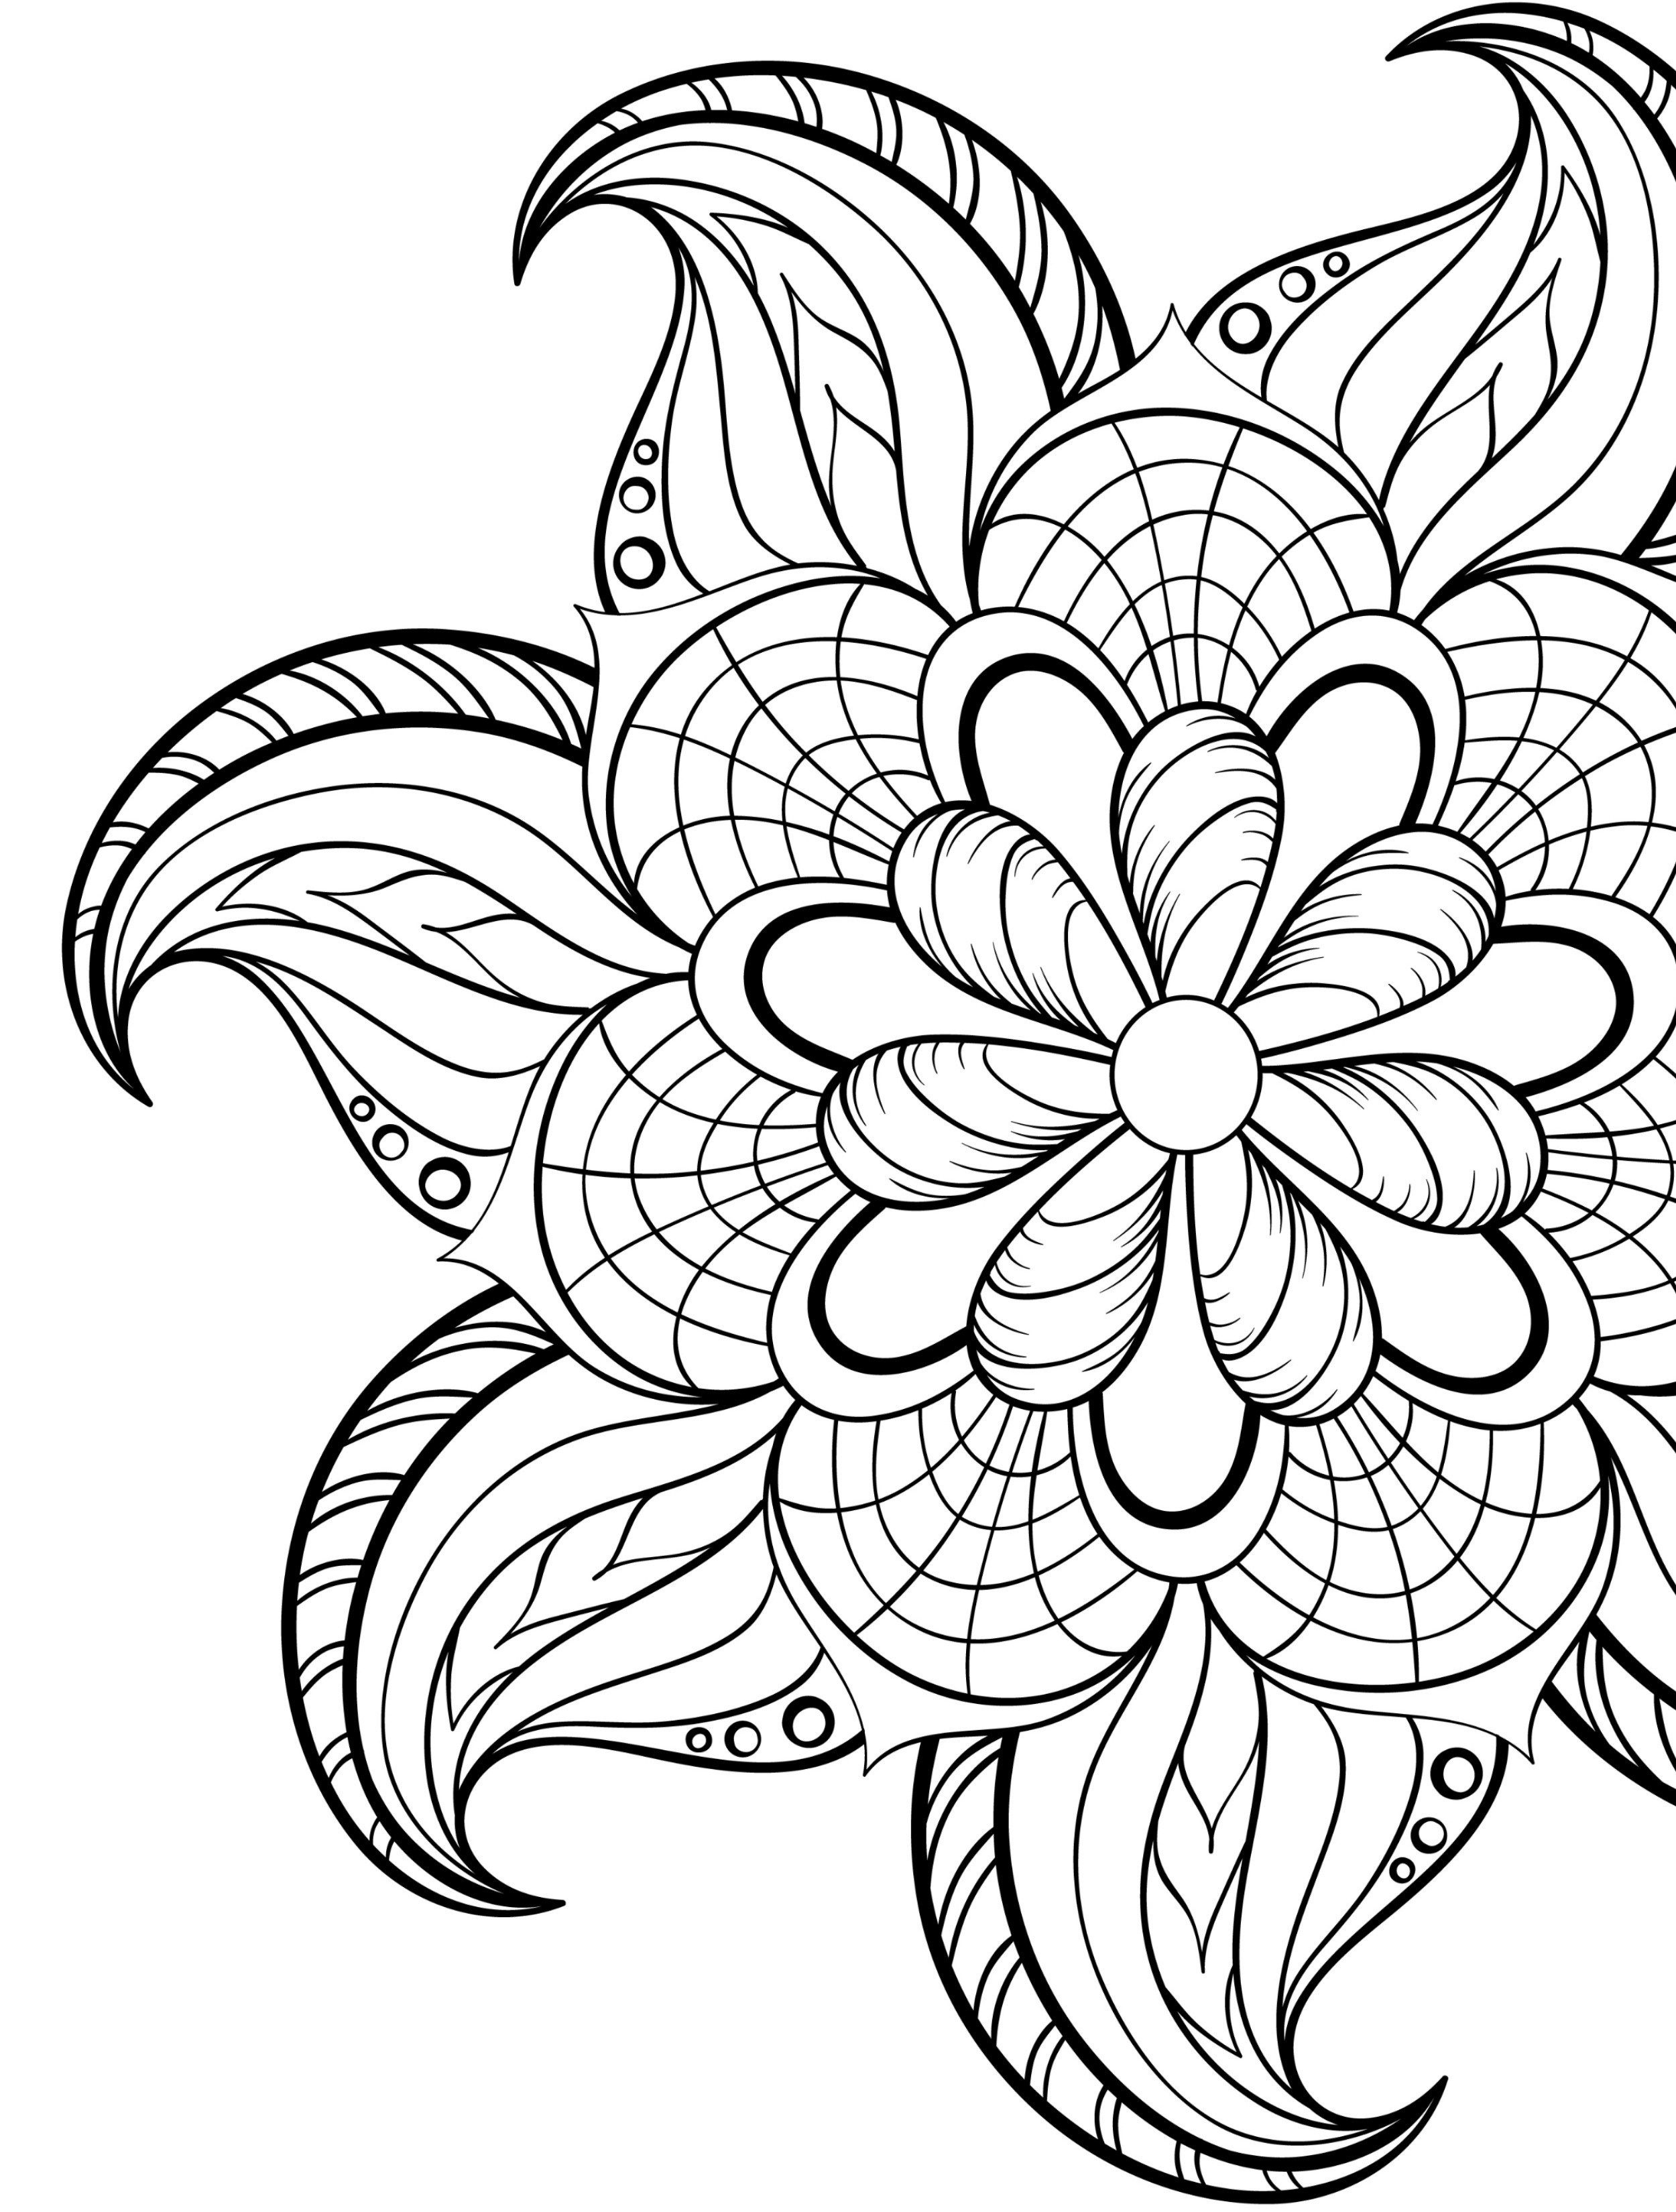 20 Gorgeous Free Printable Adult Coloring Pages | Coloring - Free Printable Coloring Books For Adults